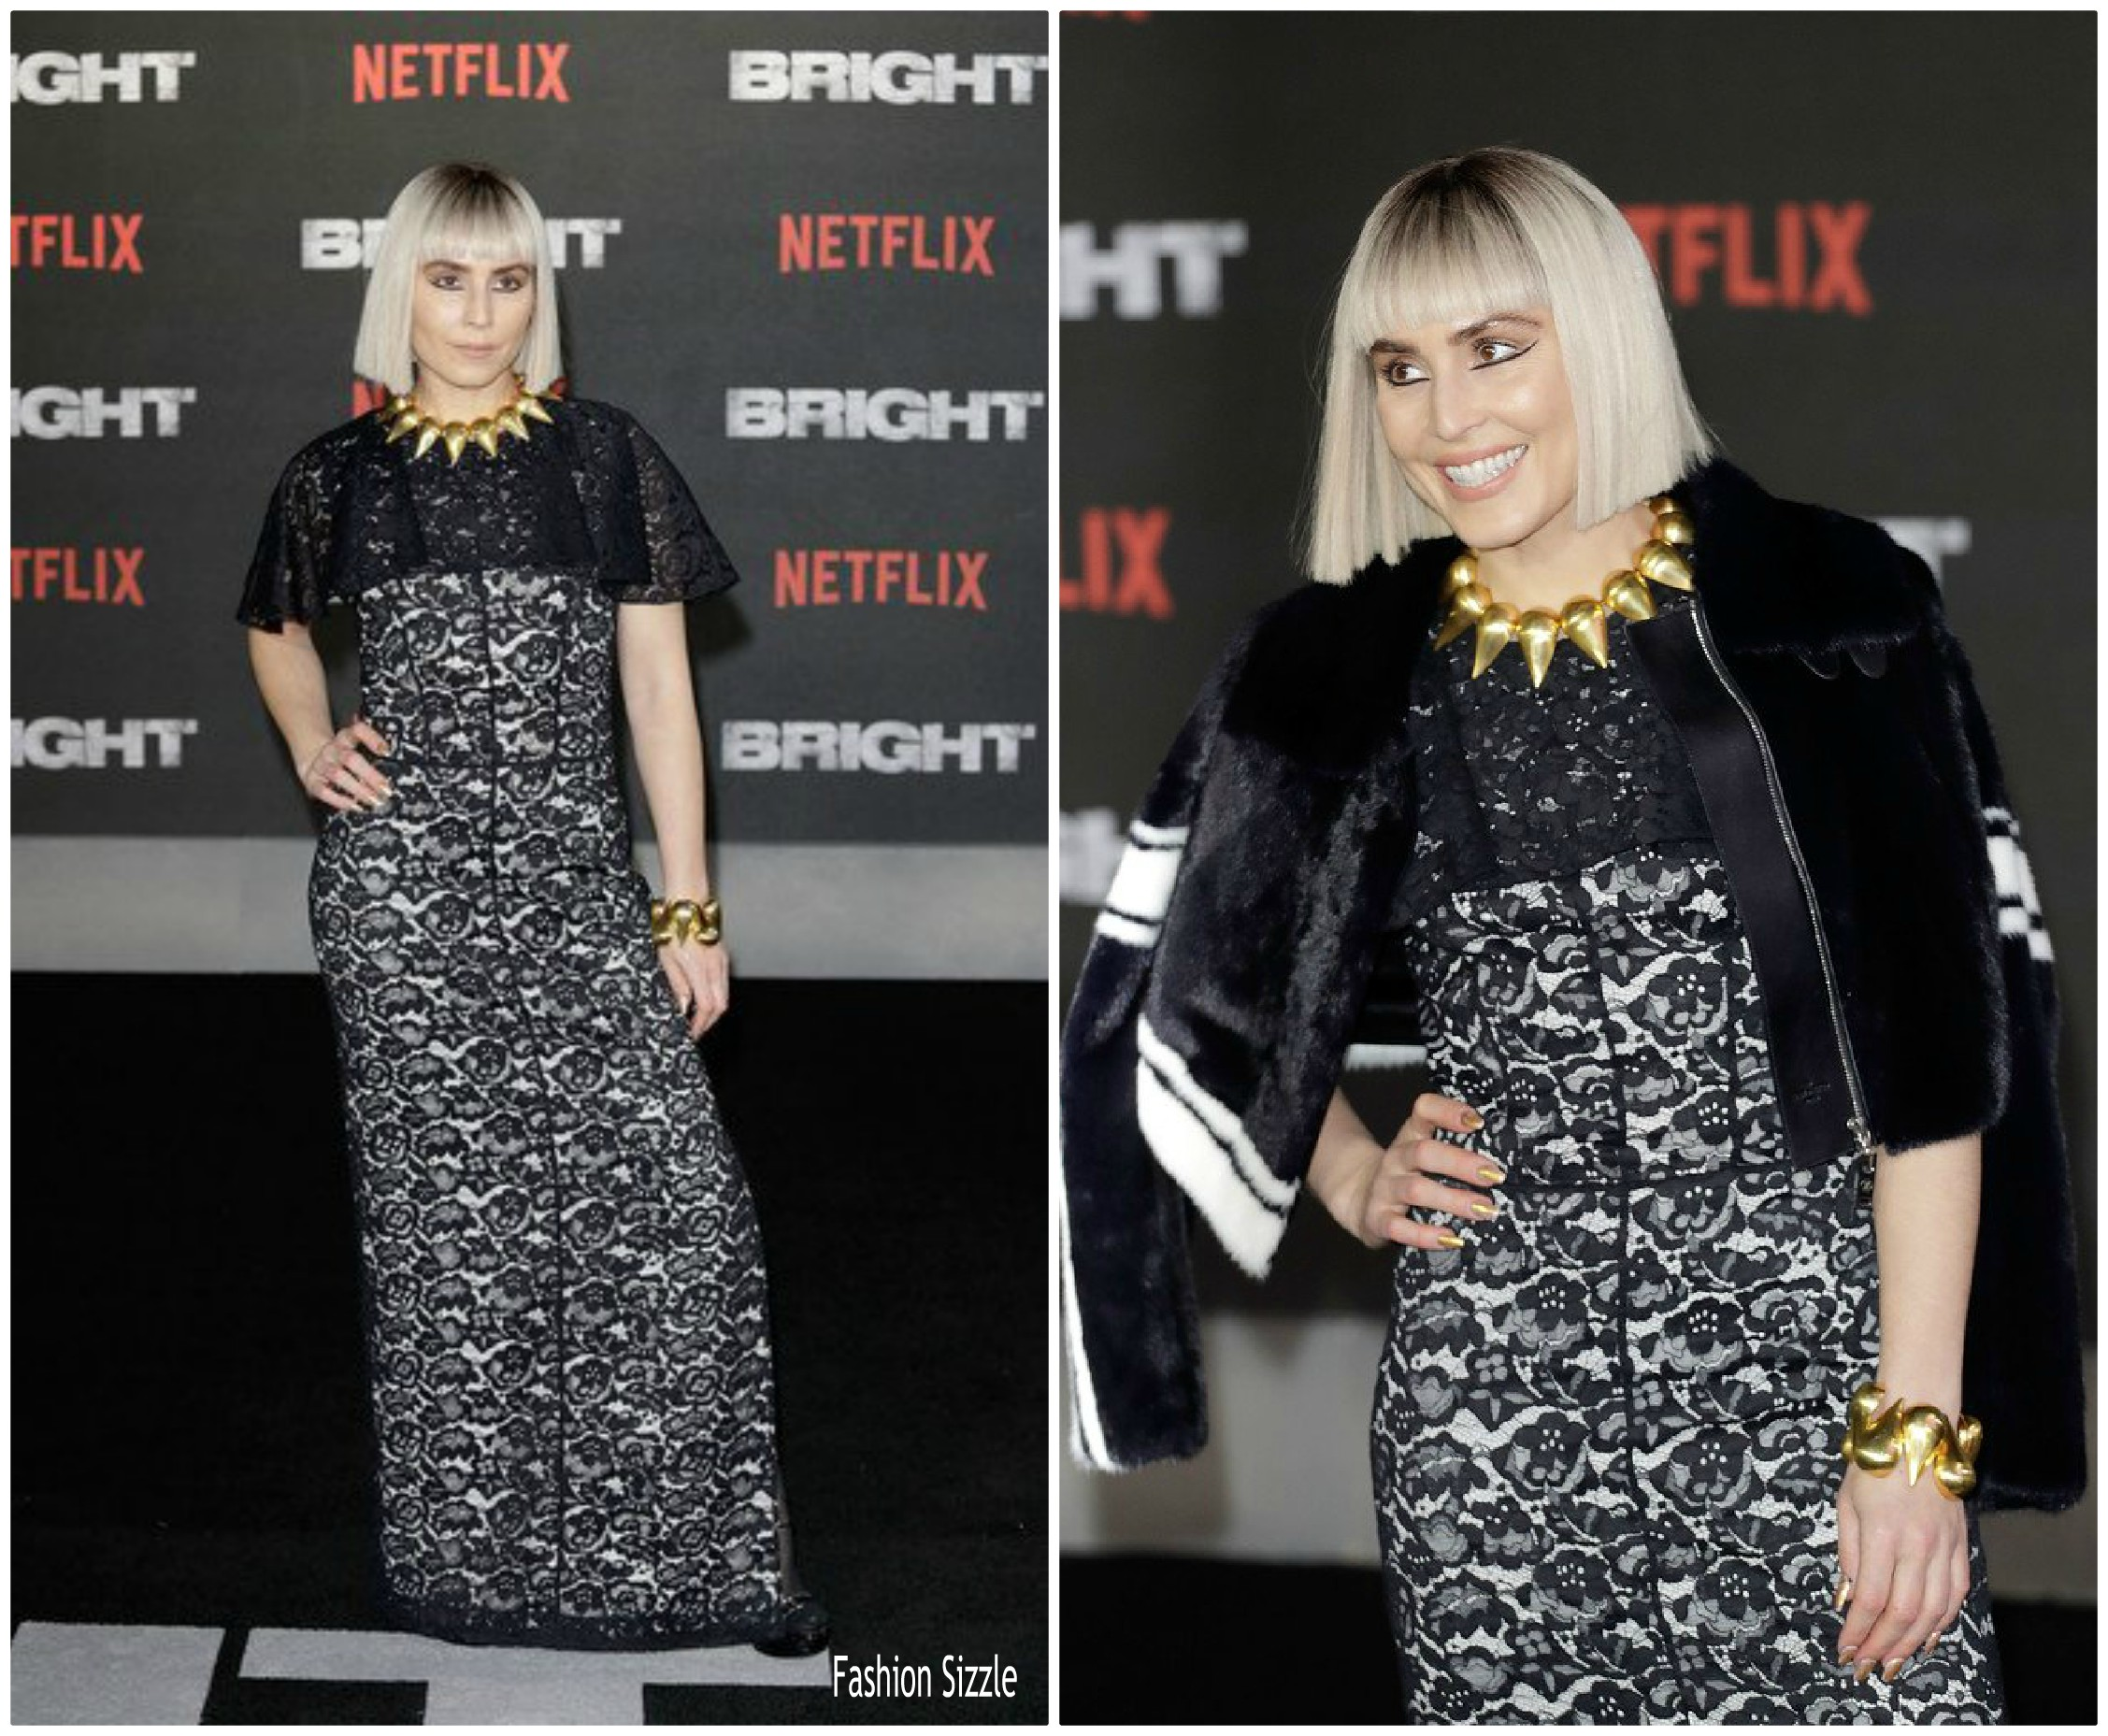 noomi-rapace-in-louis-vuitton-netflixs-bright-london-premiere